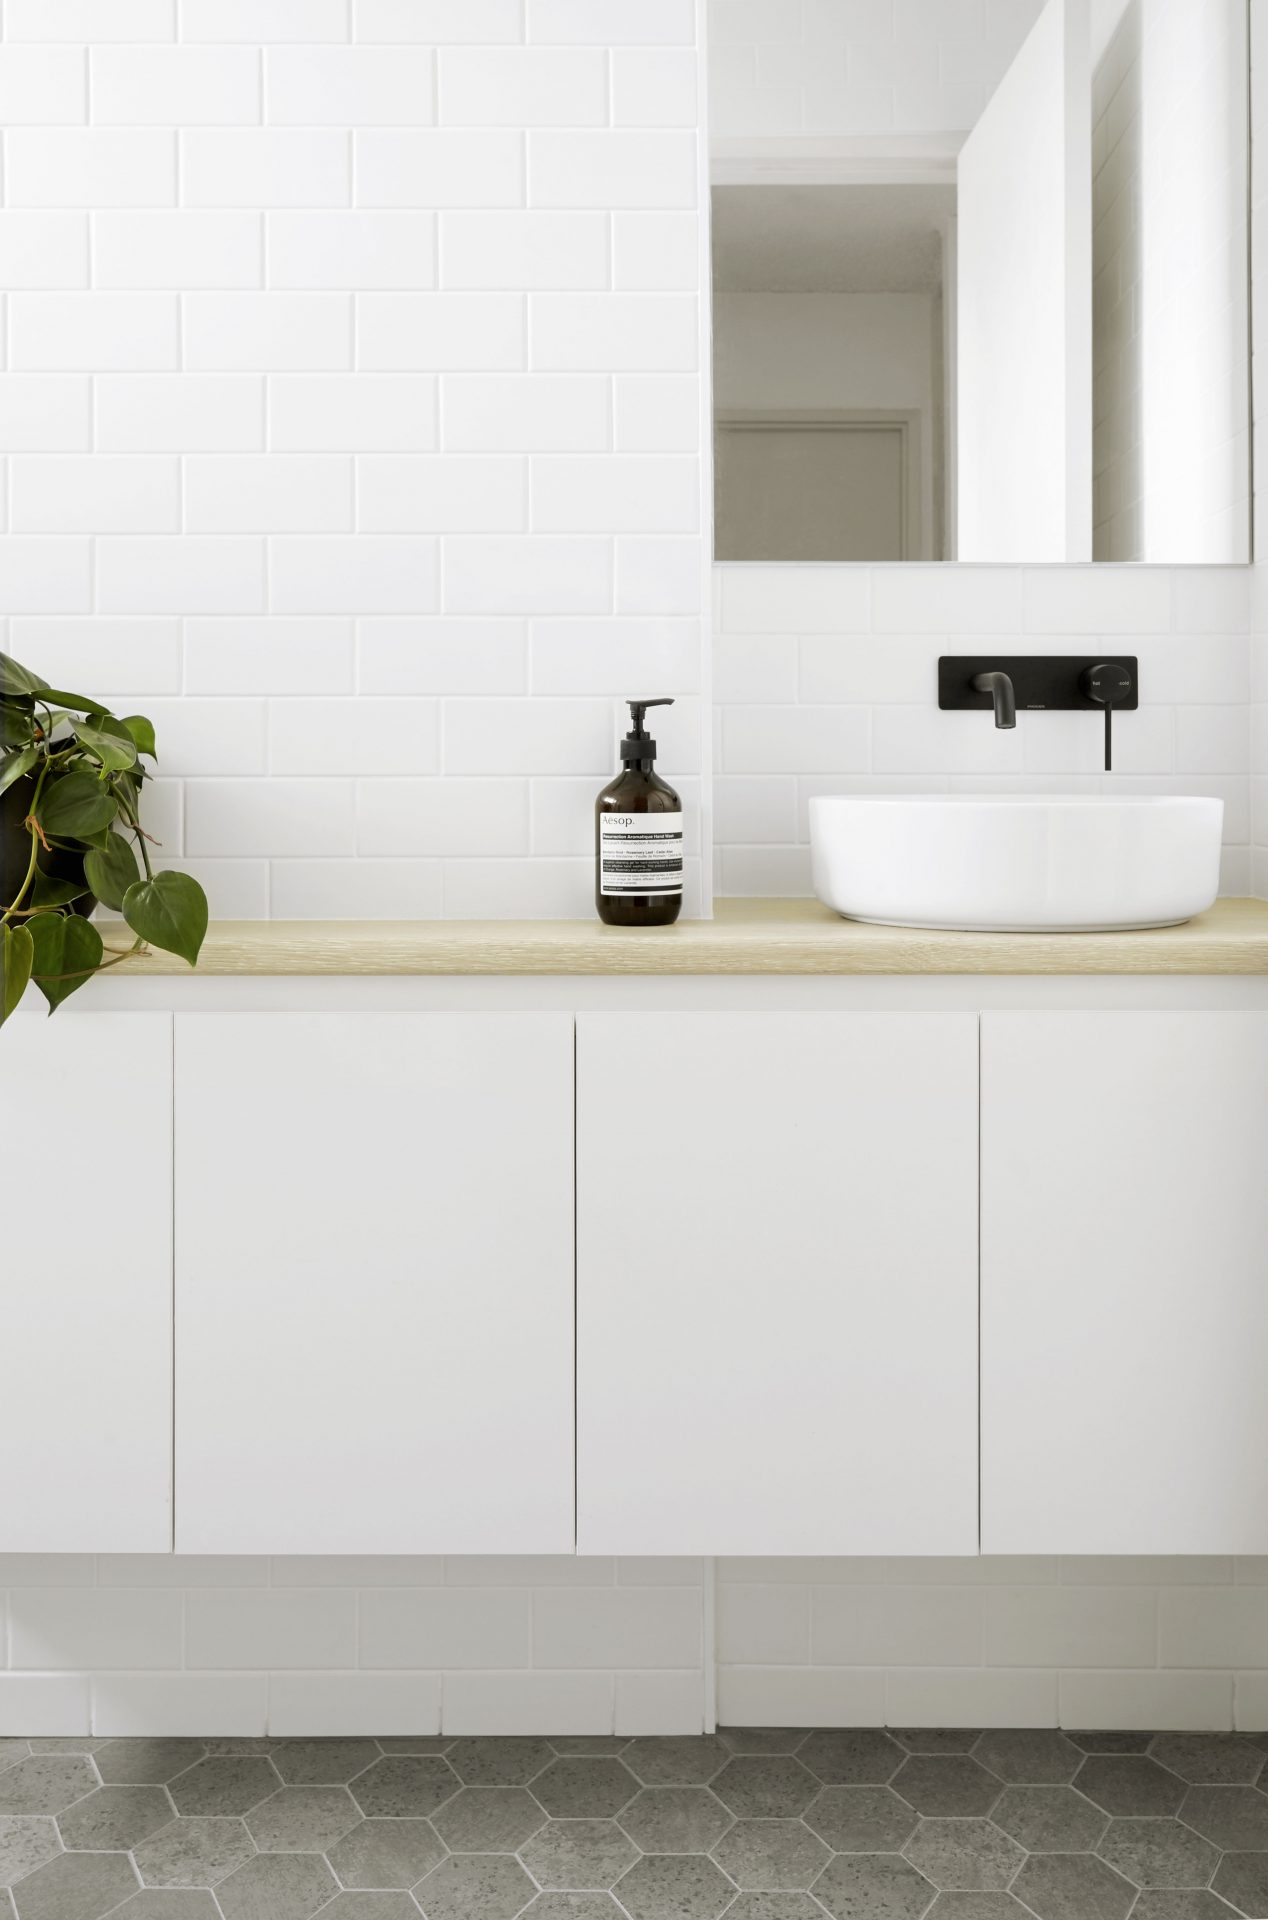 After - fresh and contemporary bathroom makeover